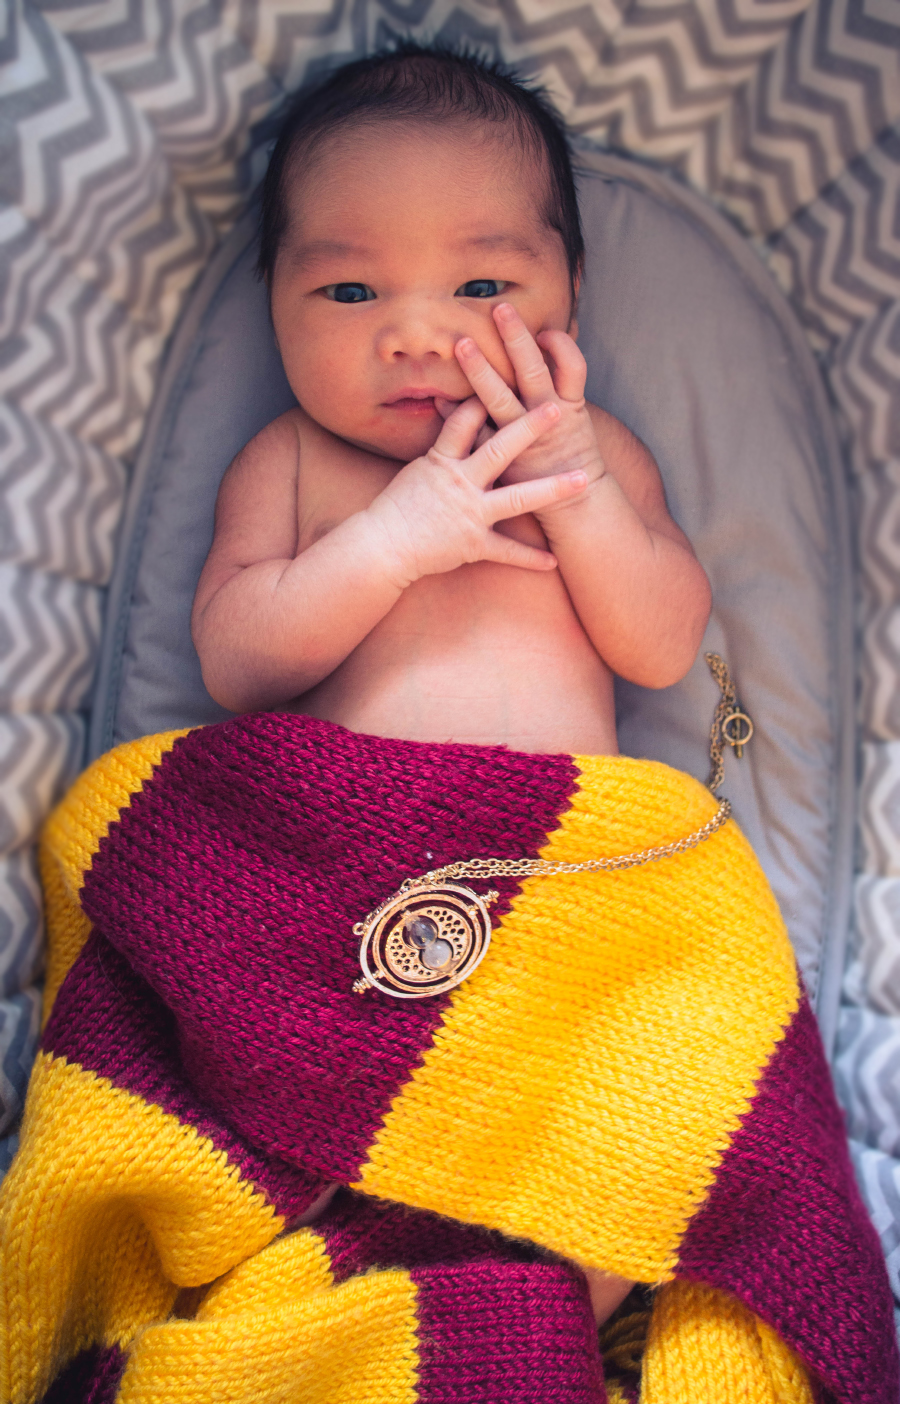 Harry Potter Baby Photoshoot: Leo's first photoshoot in the wizarding world!